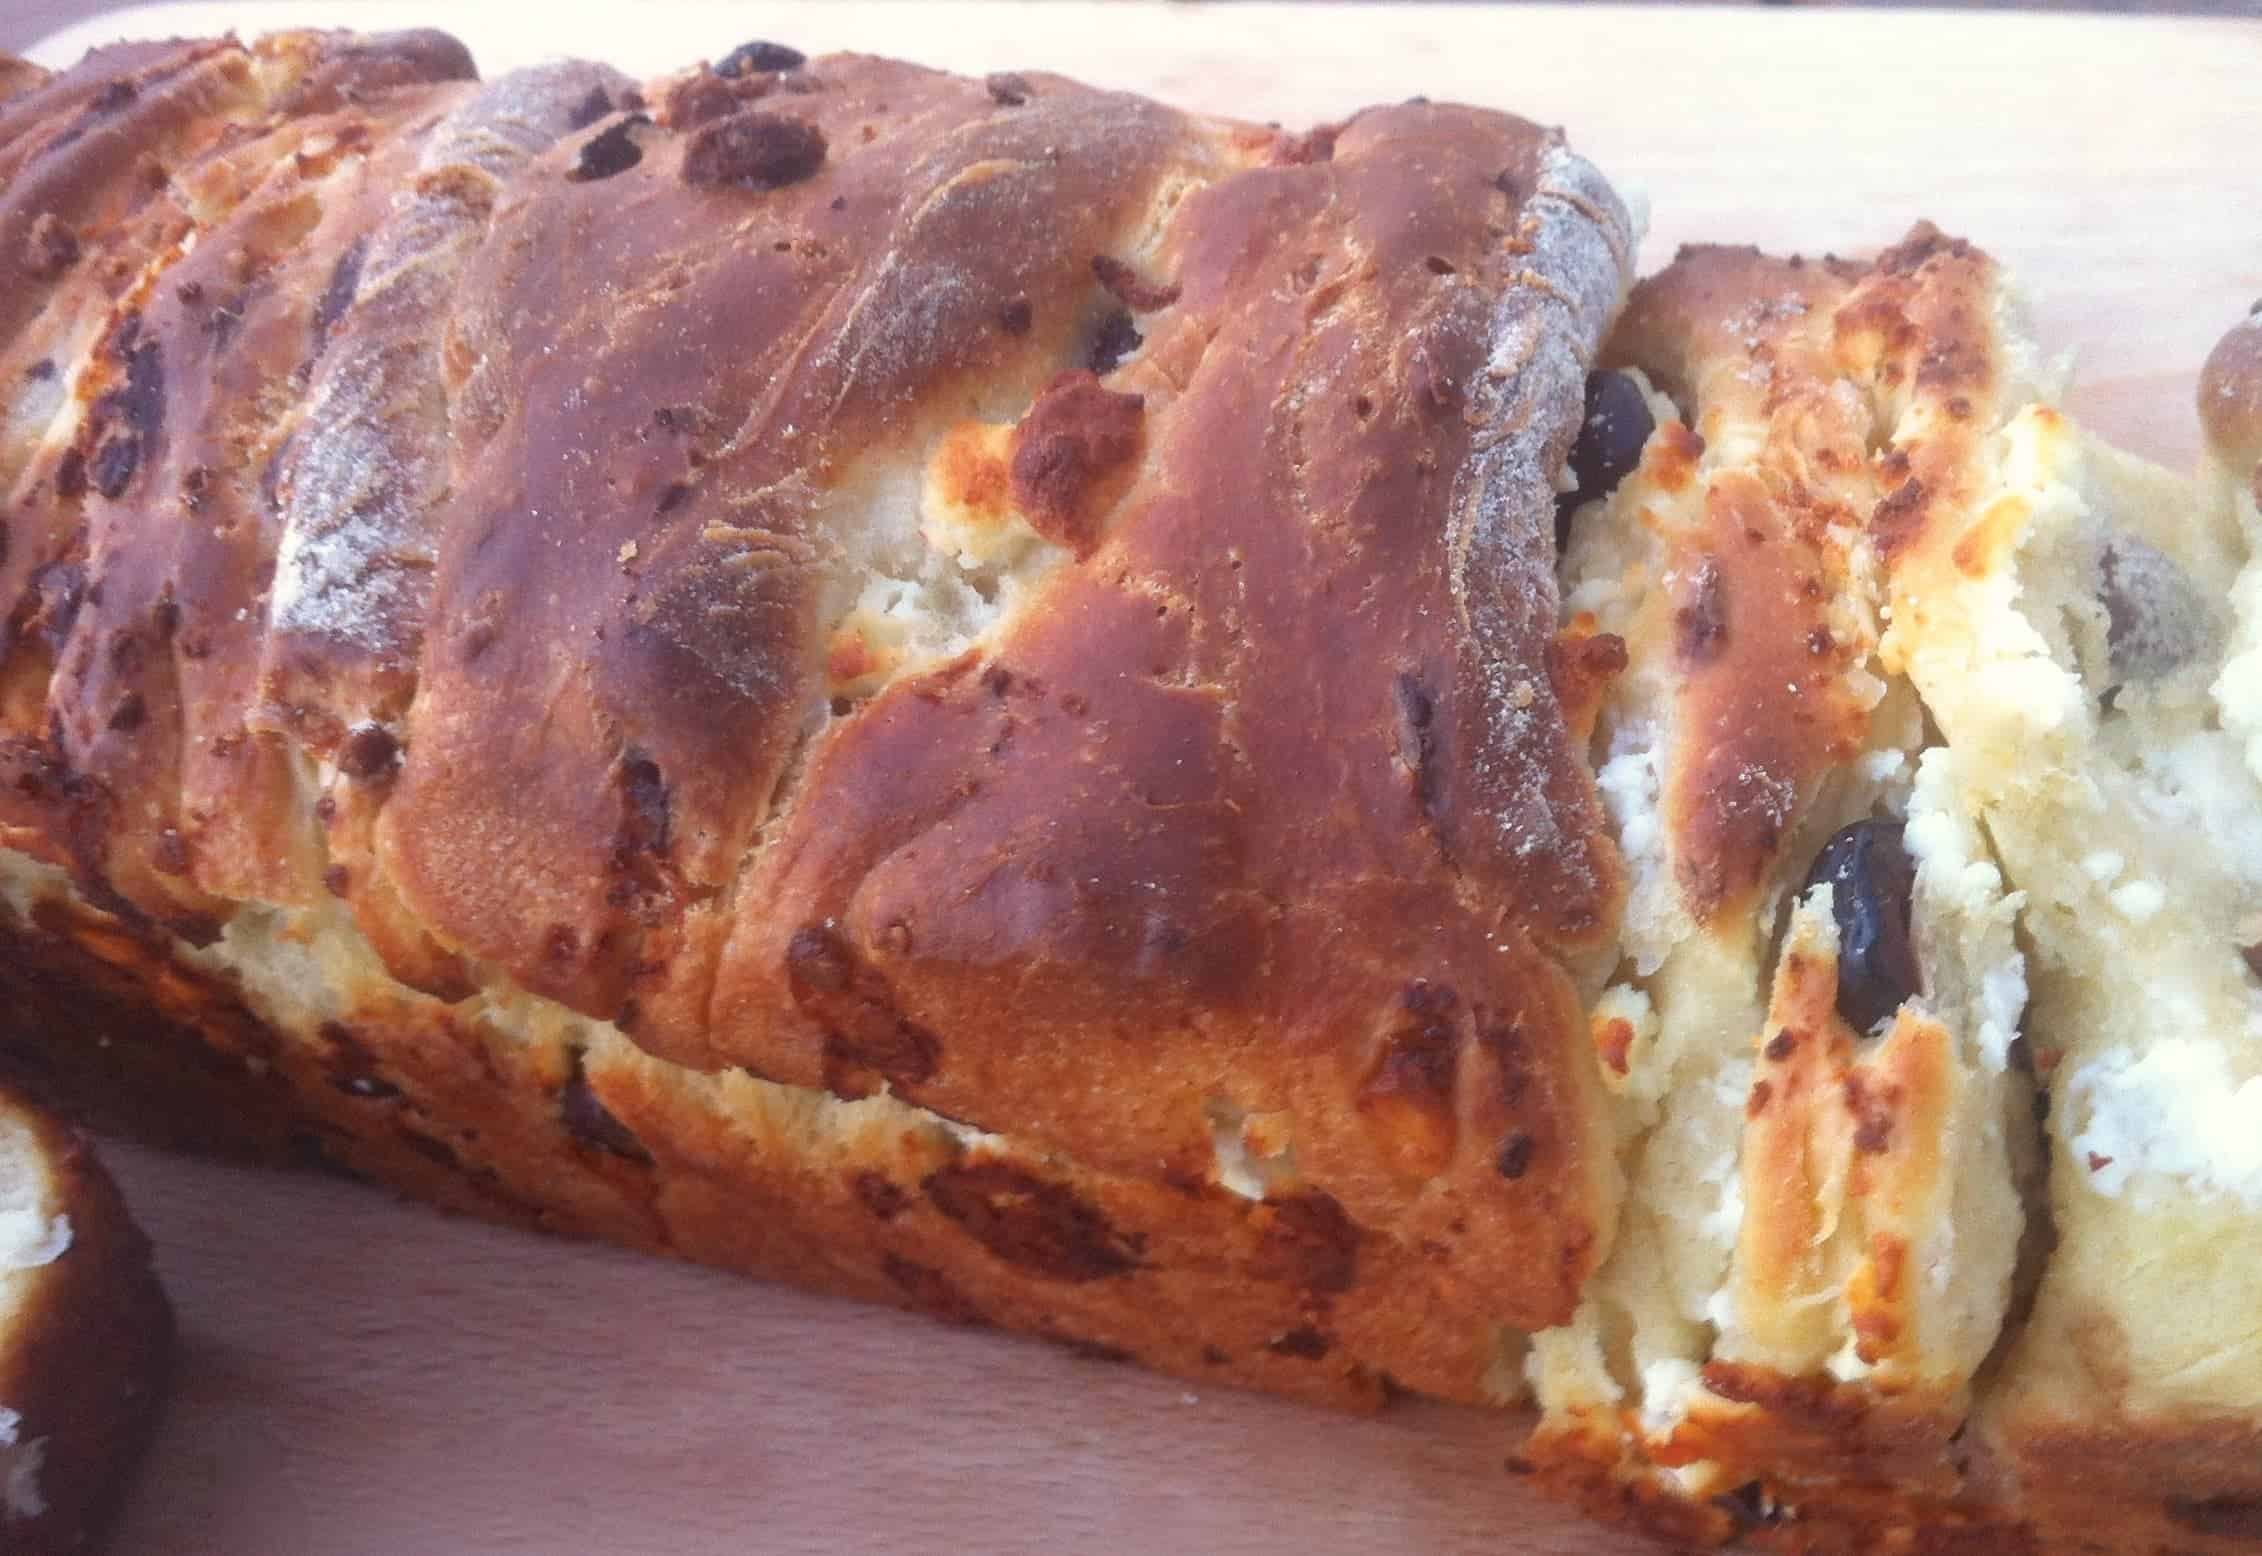 Delicious Brioche-style Olive Bread (Liopsomo) - My Greek Dish